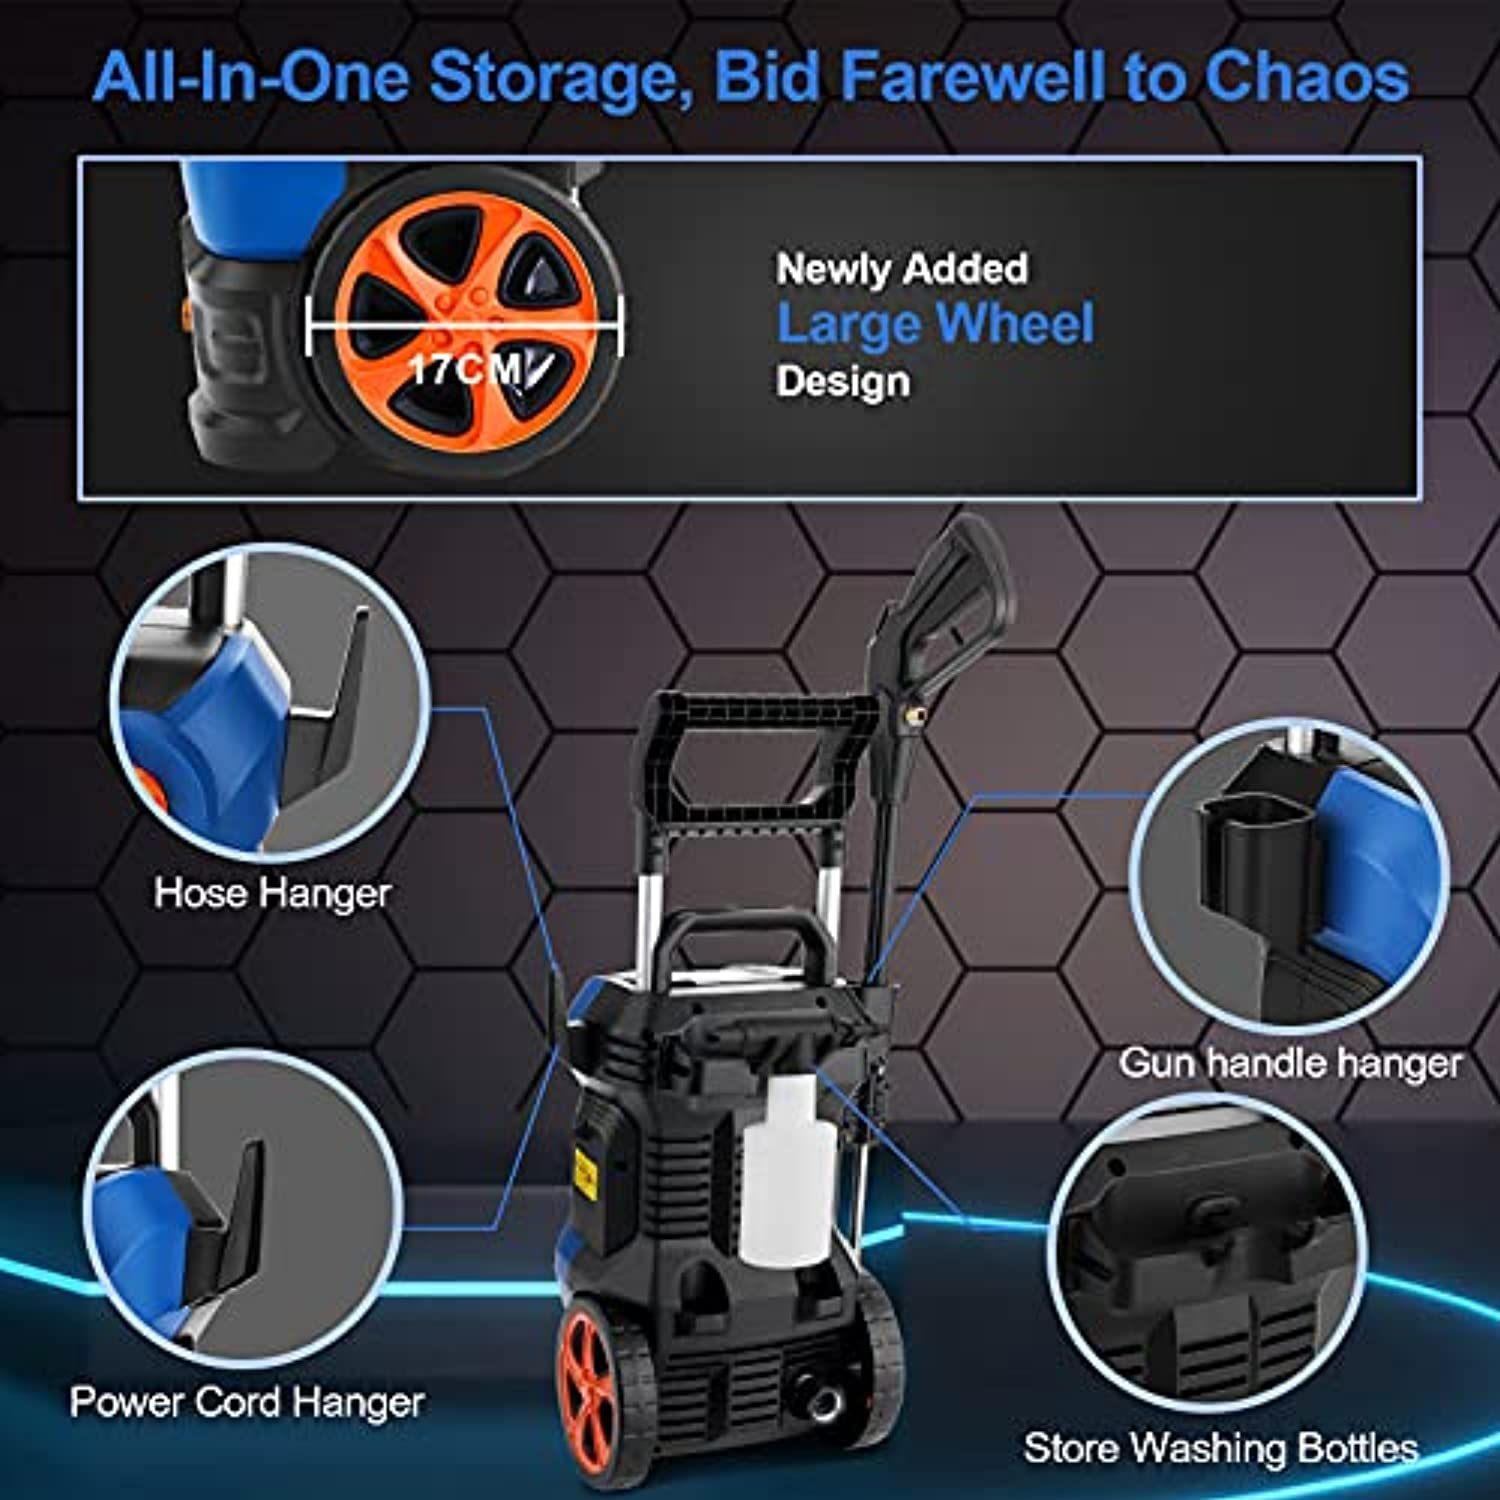 Electric Pressure Washer ,3800PSI Power Washer Electric 2.8GPM High Pressure Washer 2000W Mrliance Pressure Washer with 4 Nozzles for Cleaning Homes, Cars, Driveways, Fences, Garden(Blue)